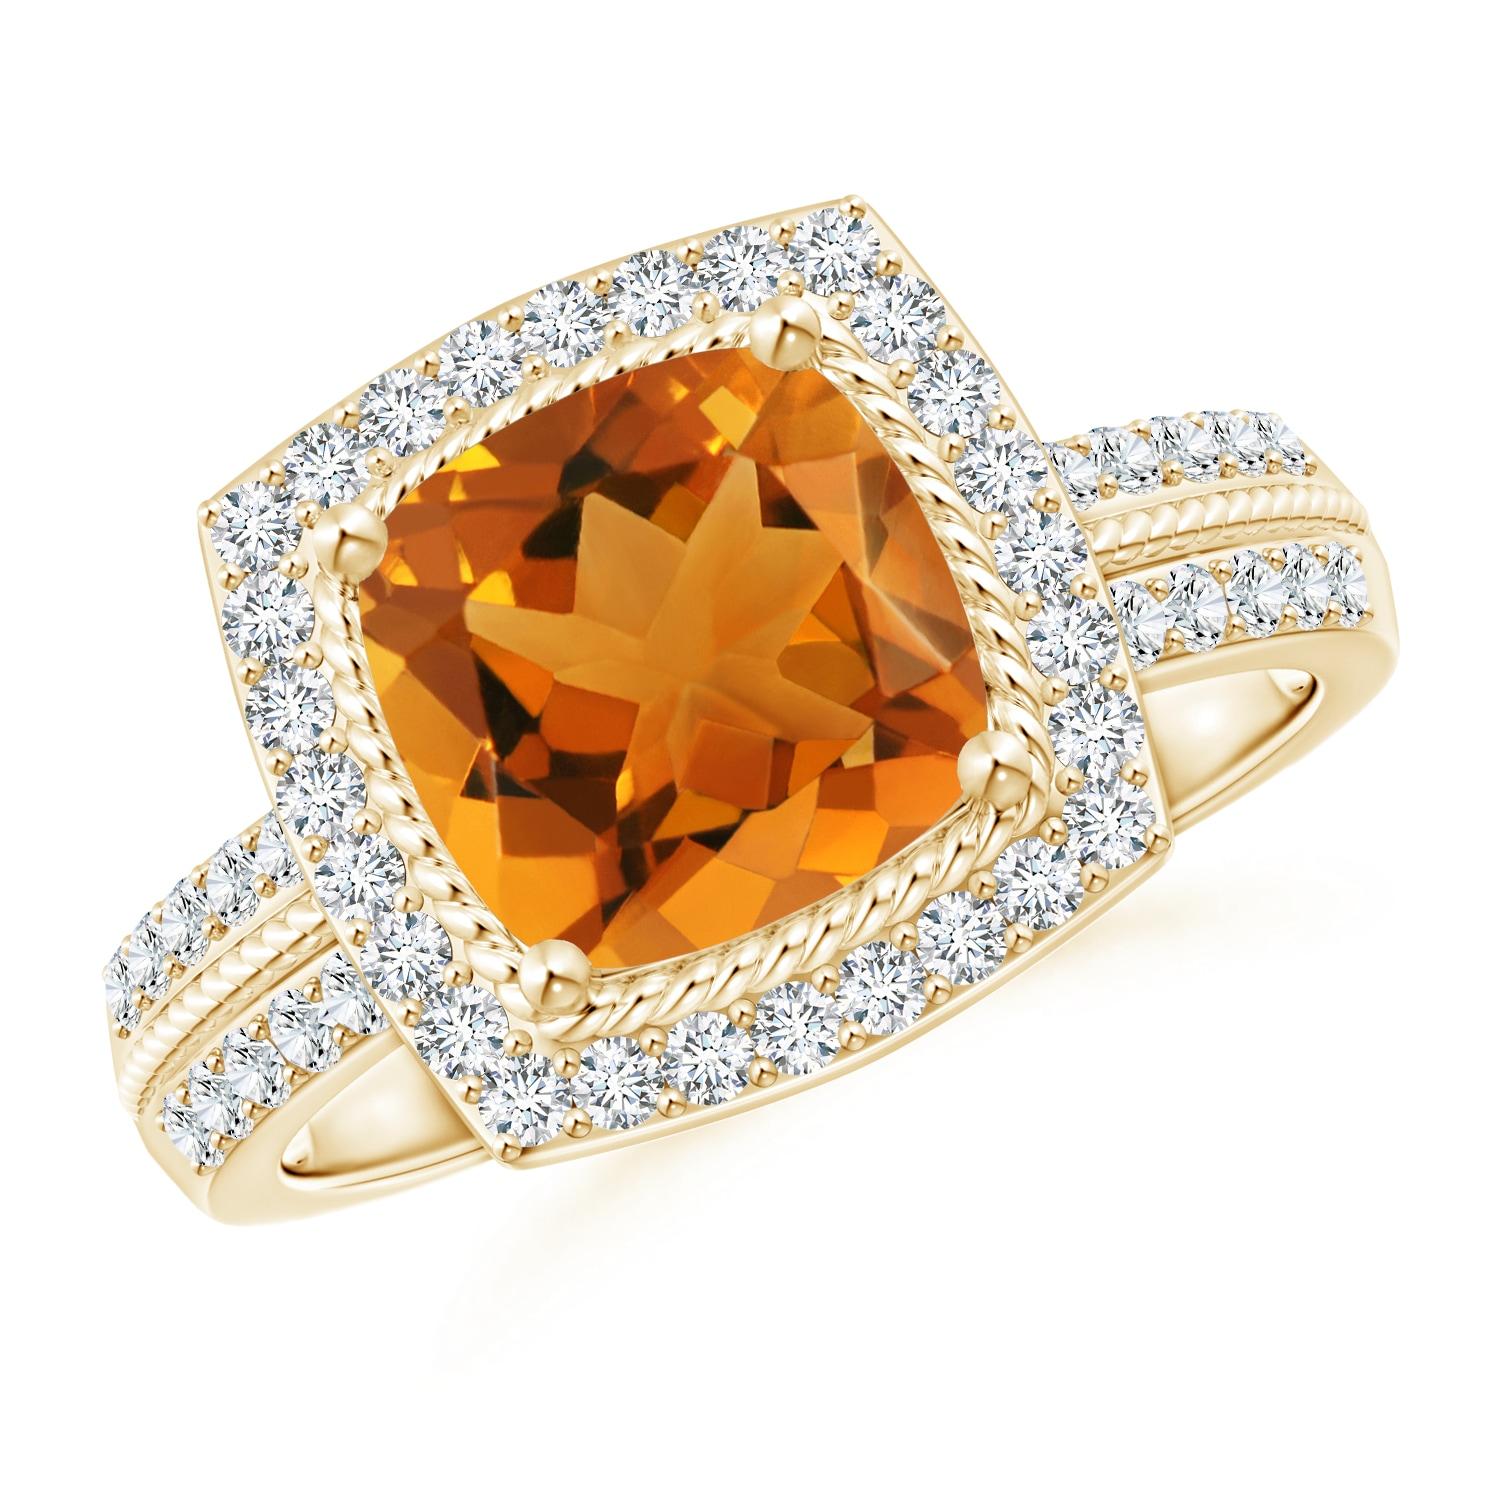 Vintage Cushion Citrine Halo Ring with Diamond Halo - Angara.com